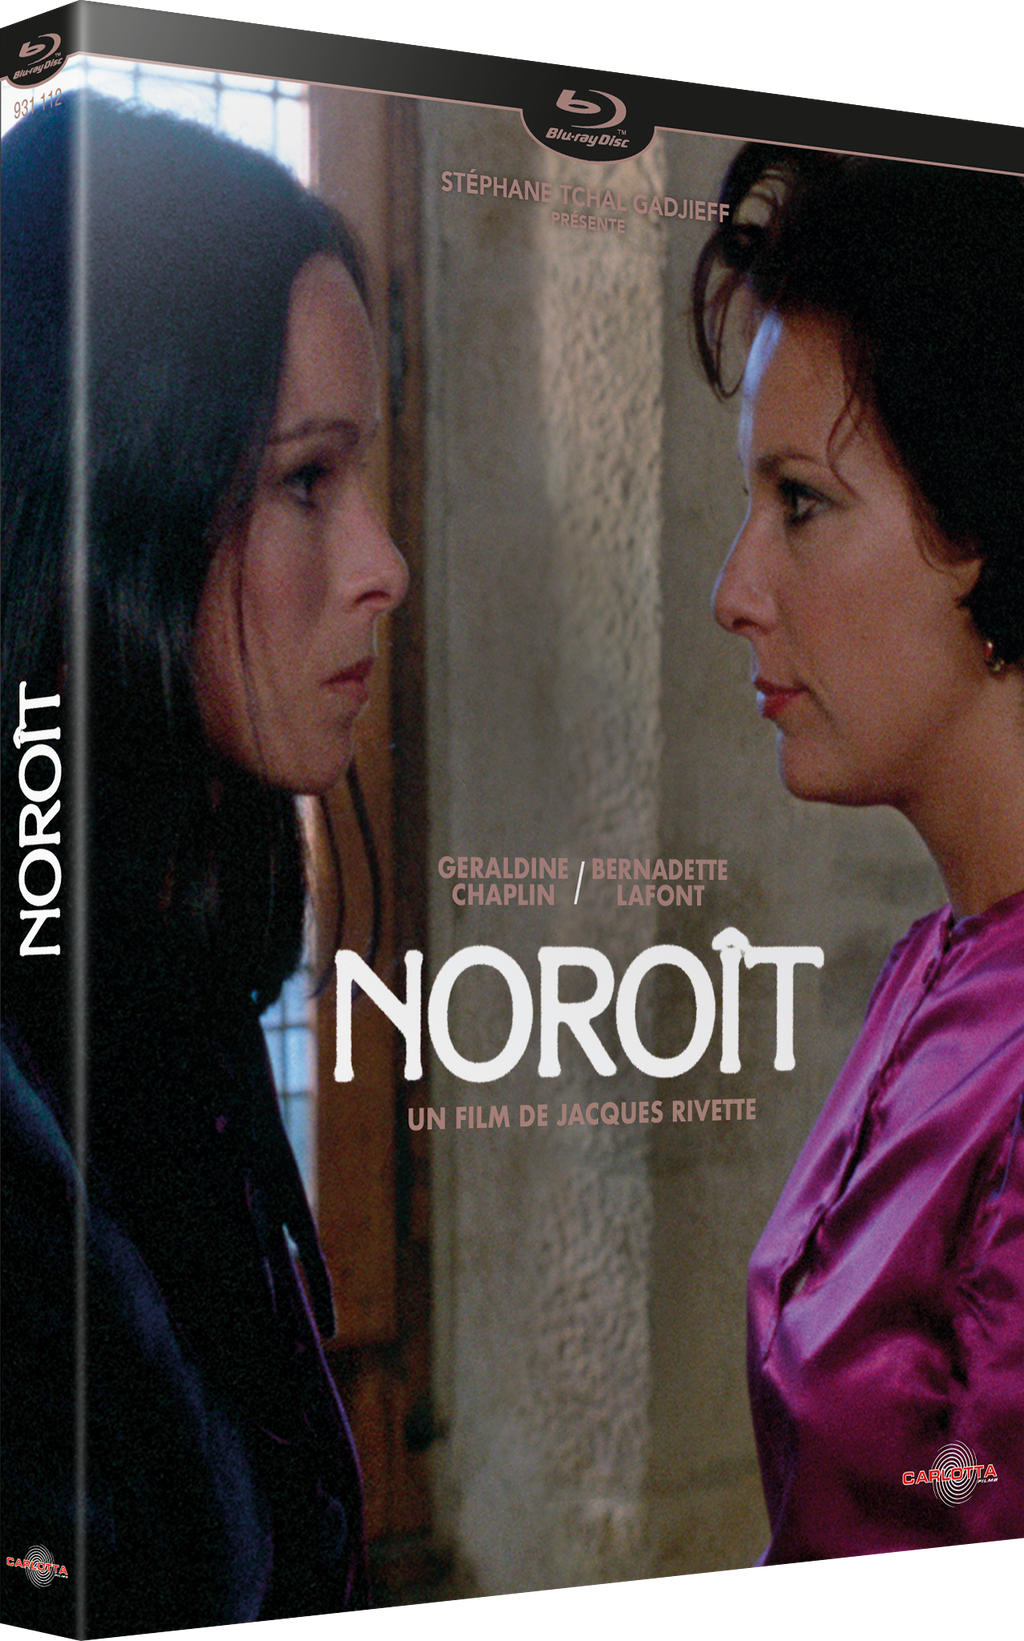 Noroît de Jacques Rivette - CARLOTTA FILMS - La Boutique